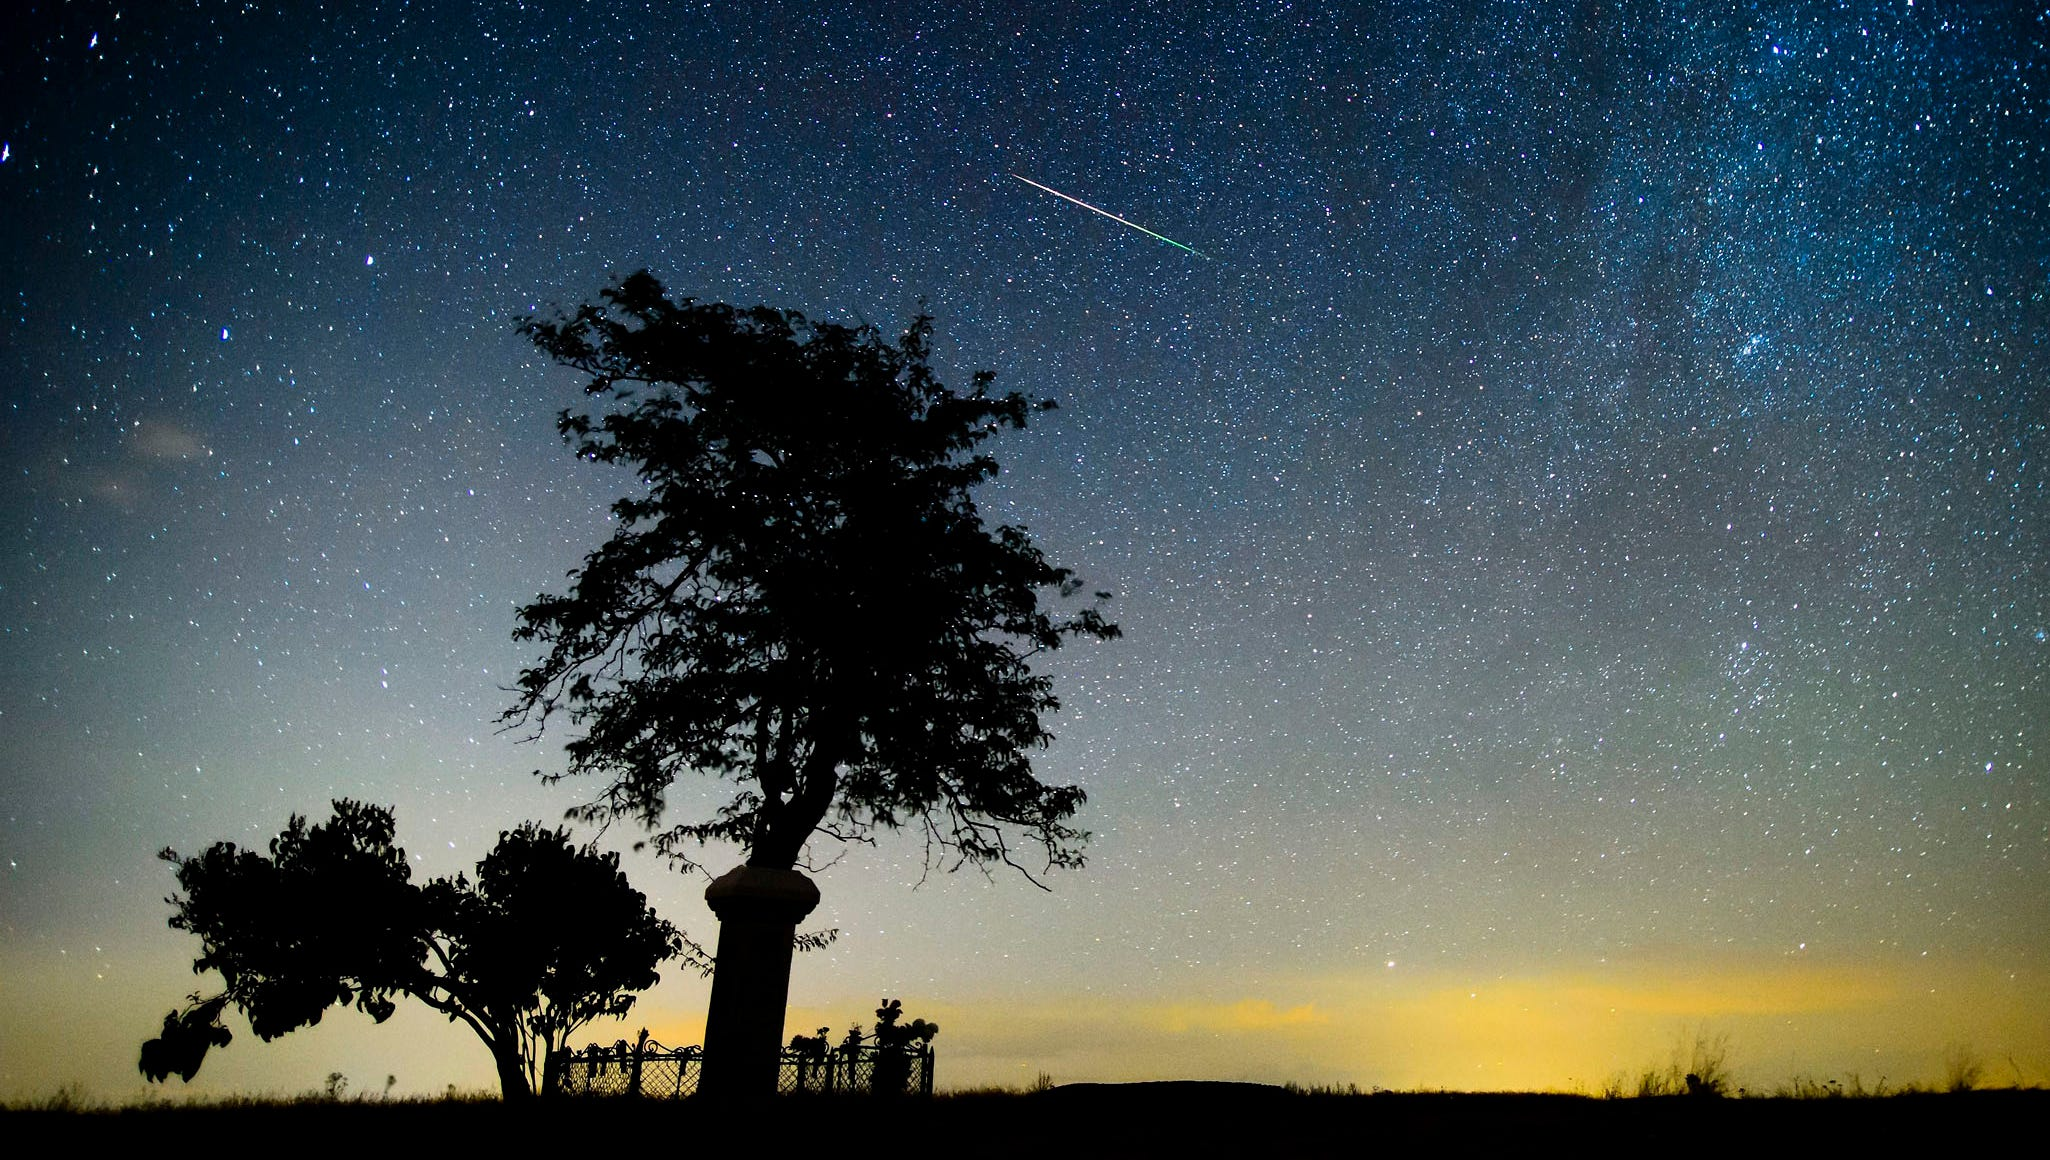 A meteor burns up in the atmosphere near Salgotarjan, Hungary.